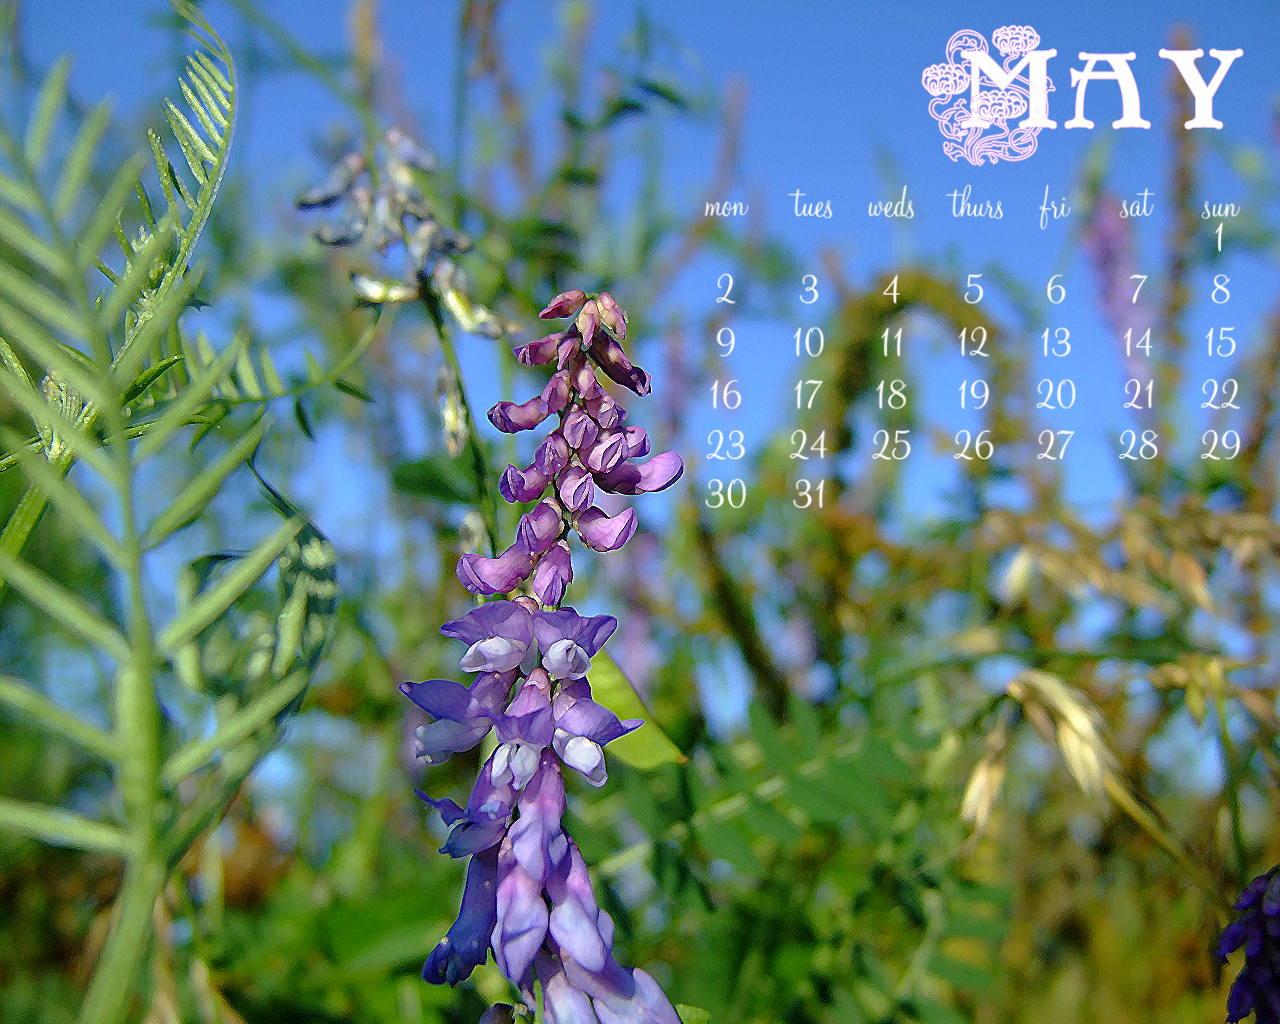 May 2011 Desktop Calender